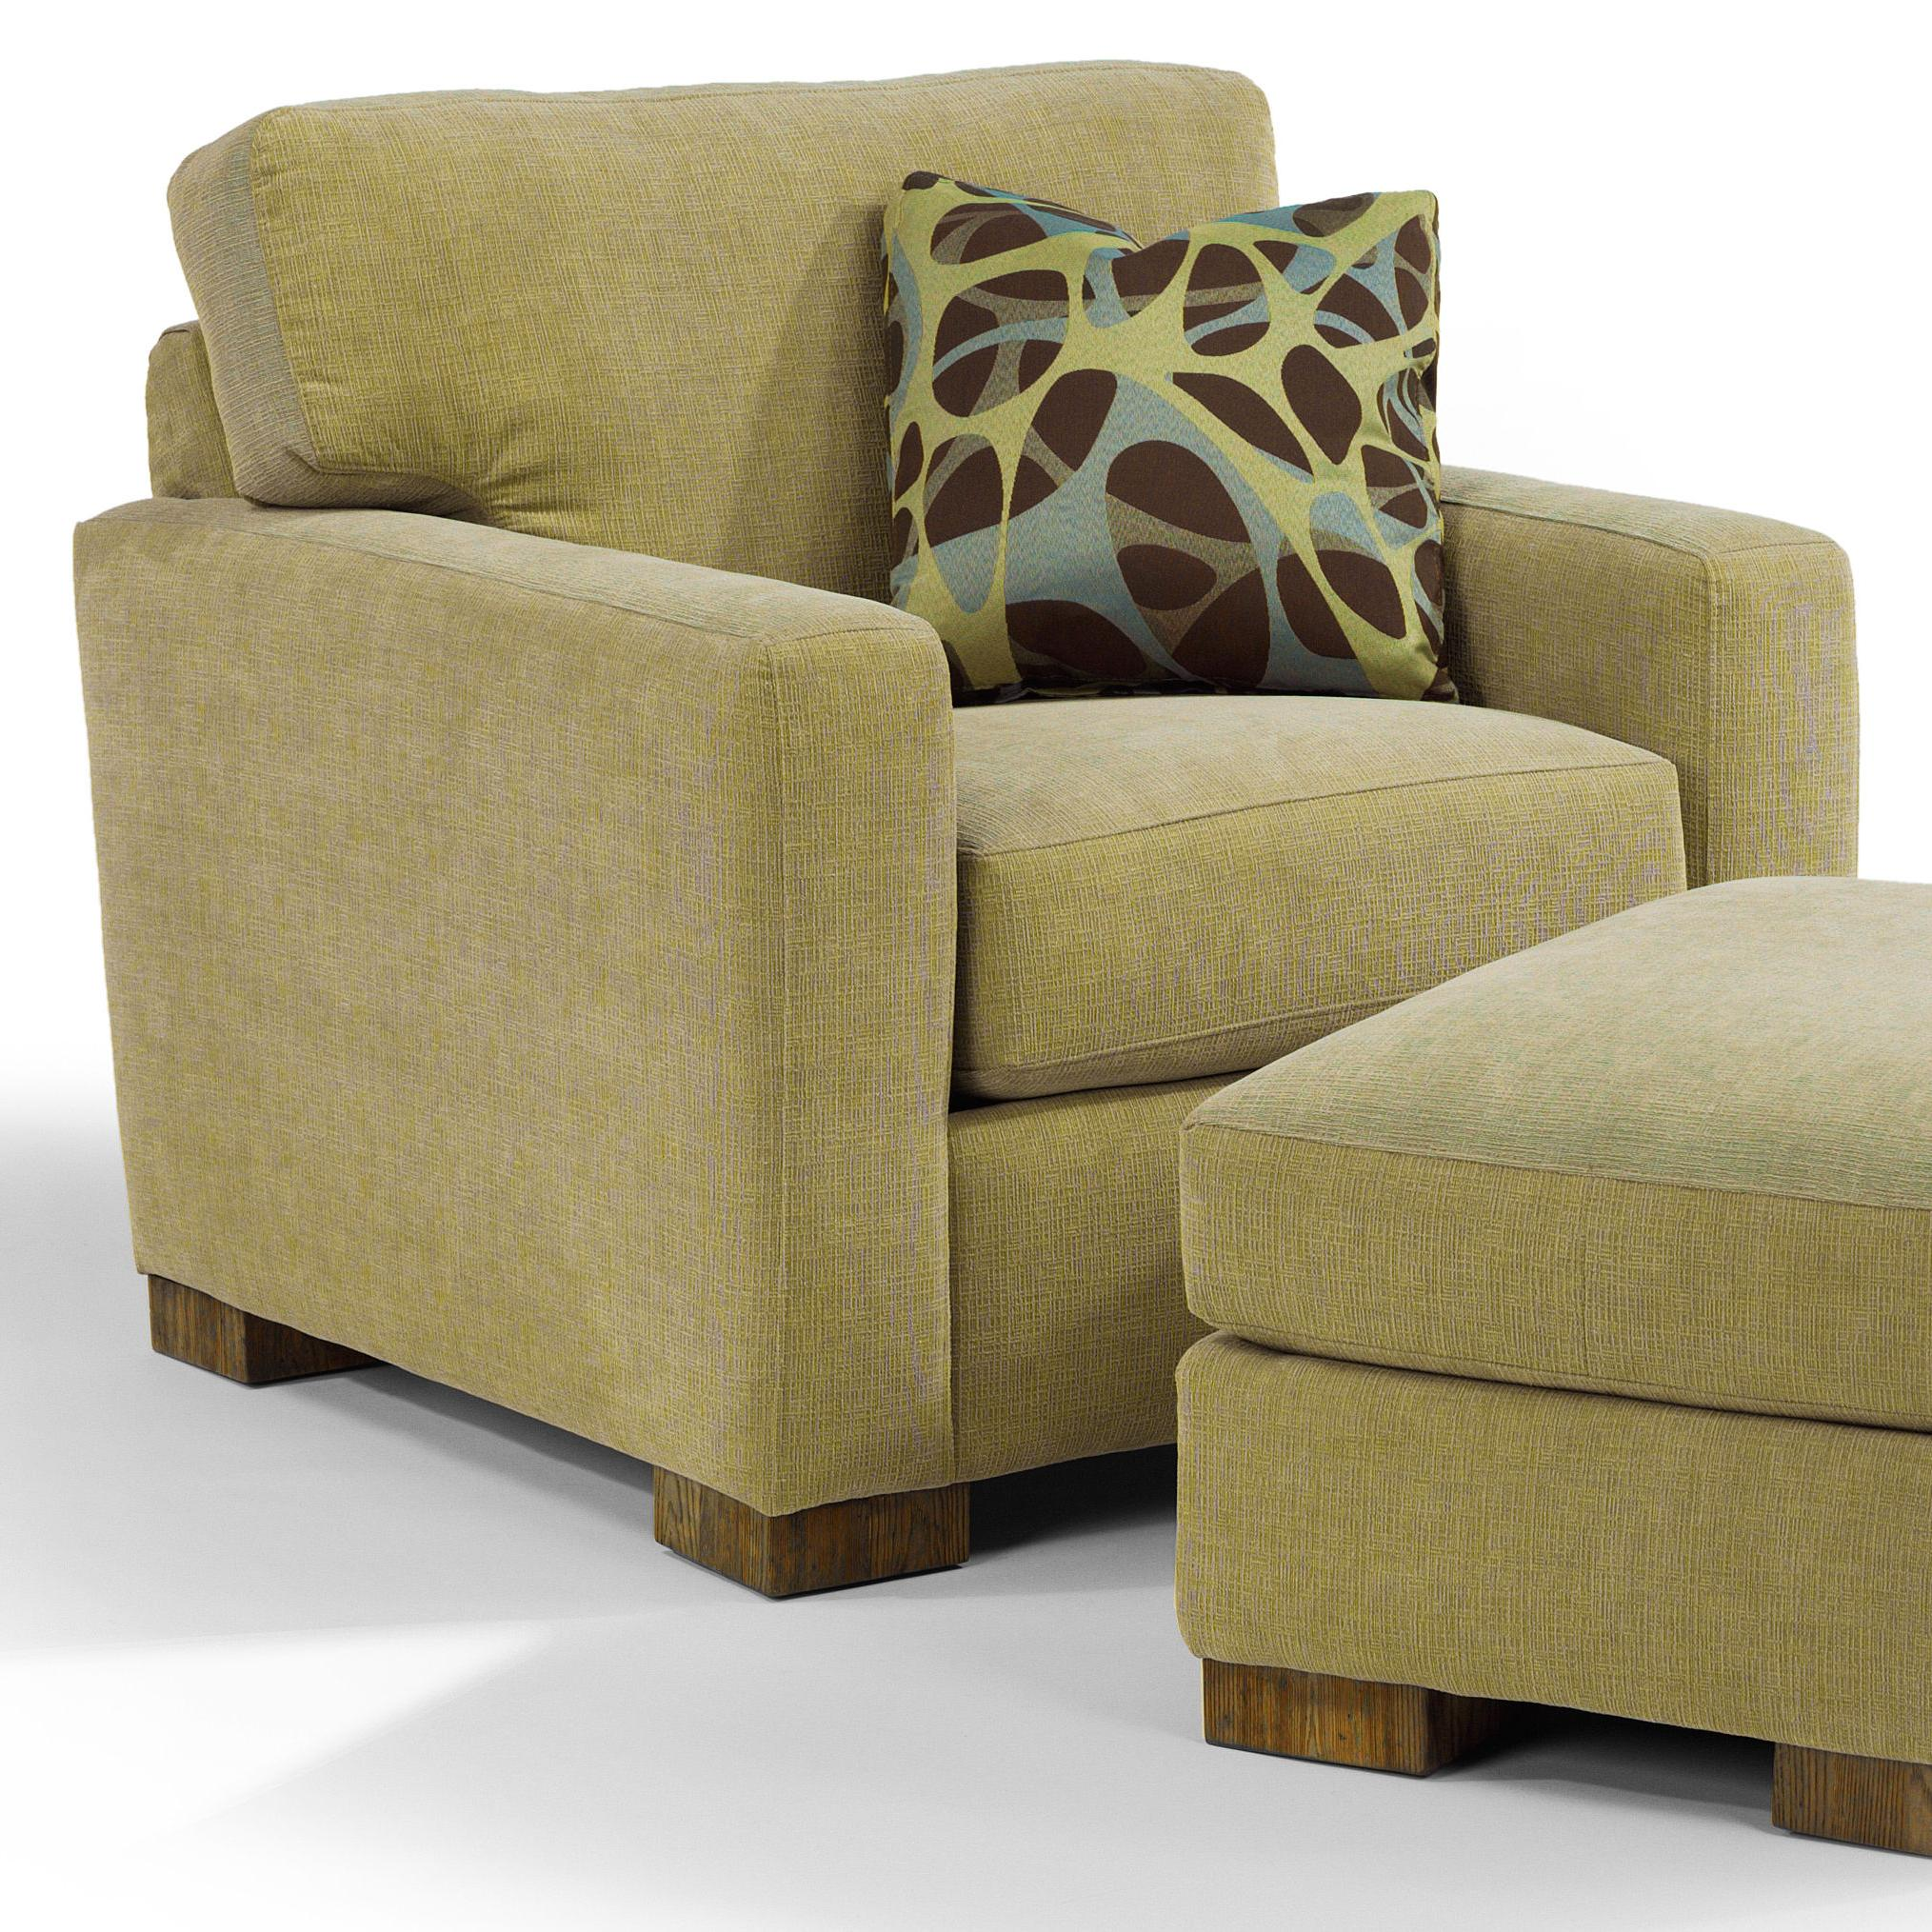 Flexsteel Bryant Contemporary Chair With Plush Seat Cushion And Track Arms Olinde 39 S Furniture